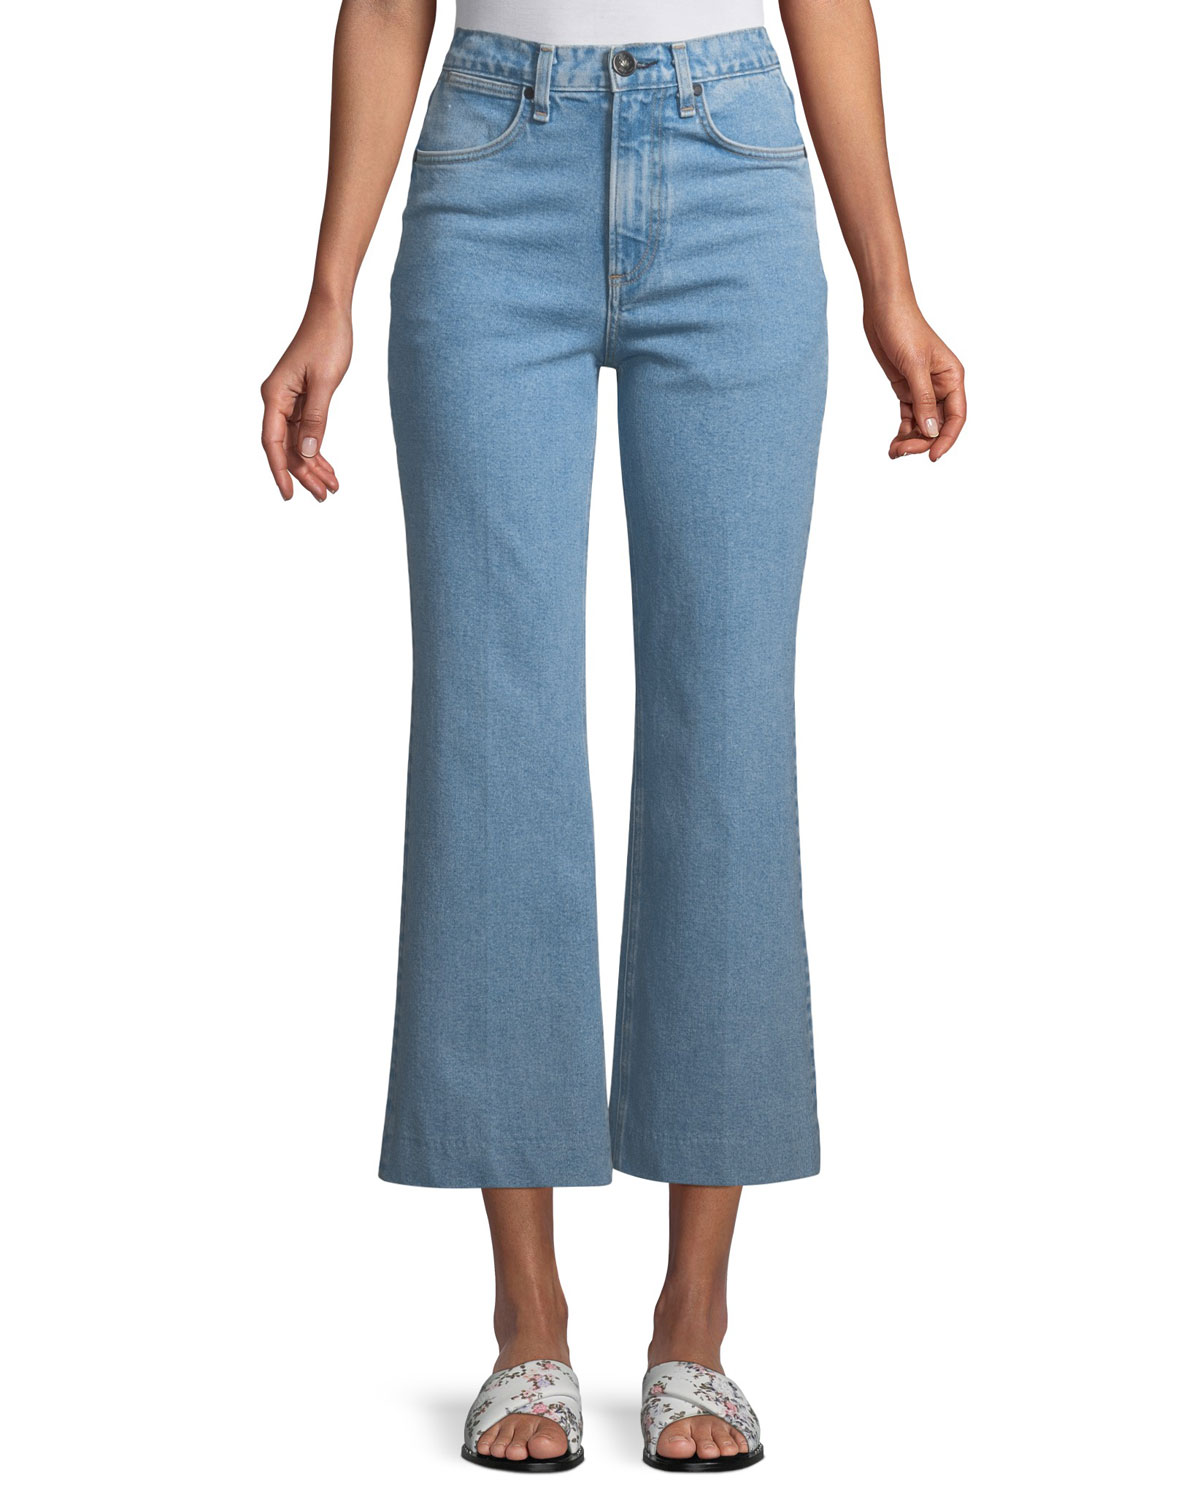 Justine Flared Ankle Jeans